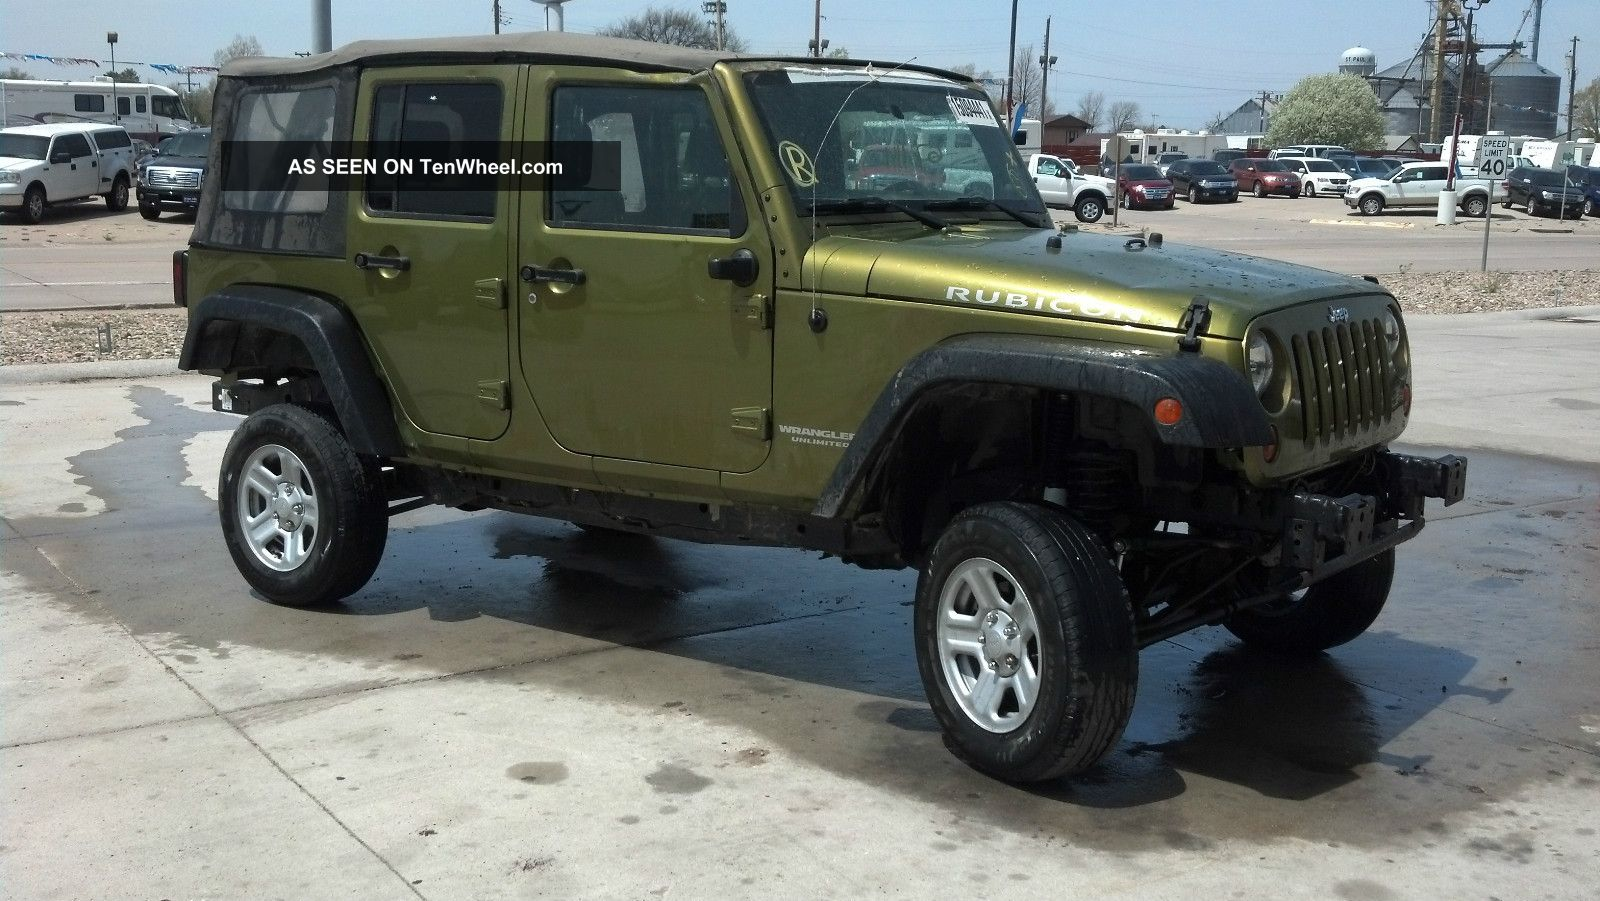 2008 jeep wrangler unlimited rubicon 4 dr automatic wrangler photo 1. Cars Review. Best American Auto & Cars Review